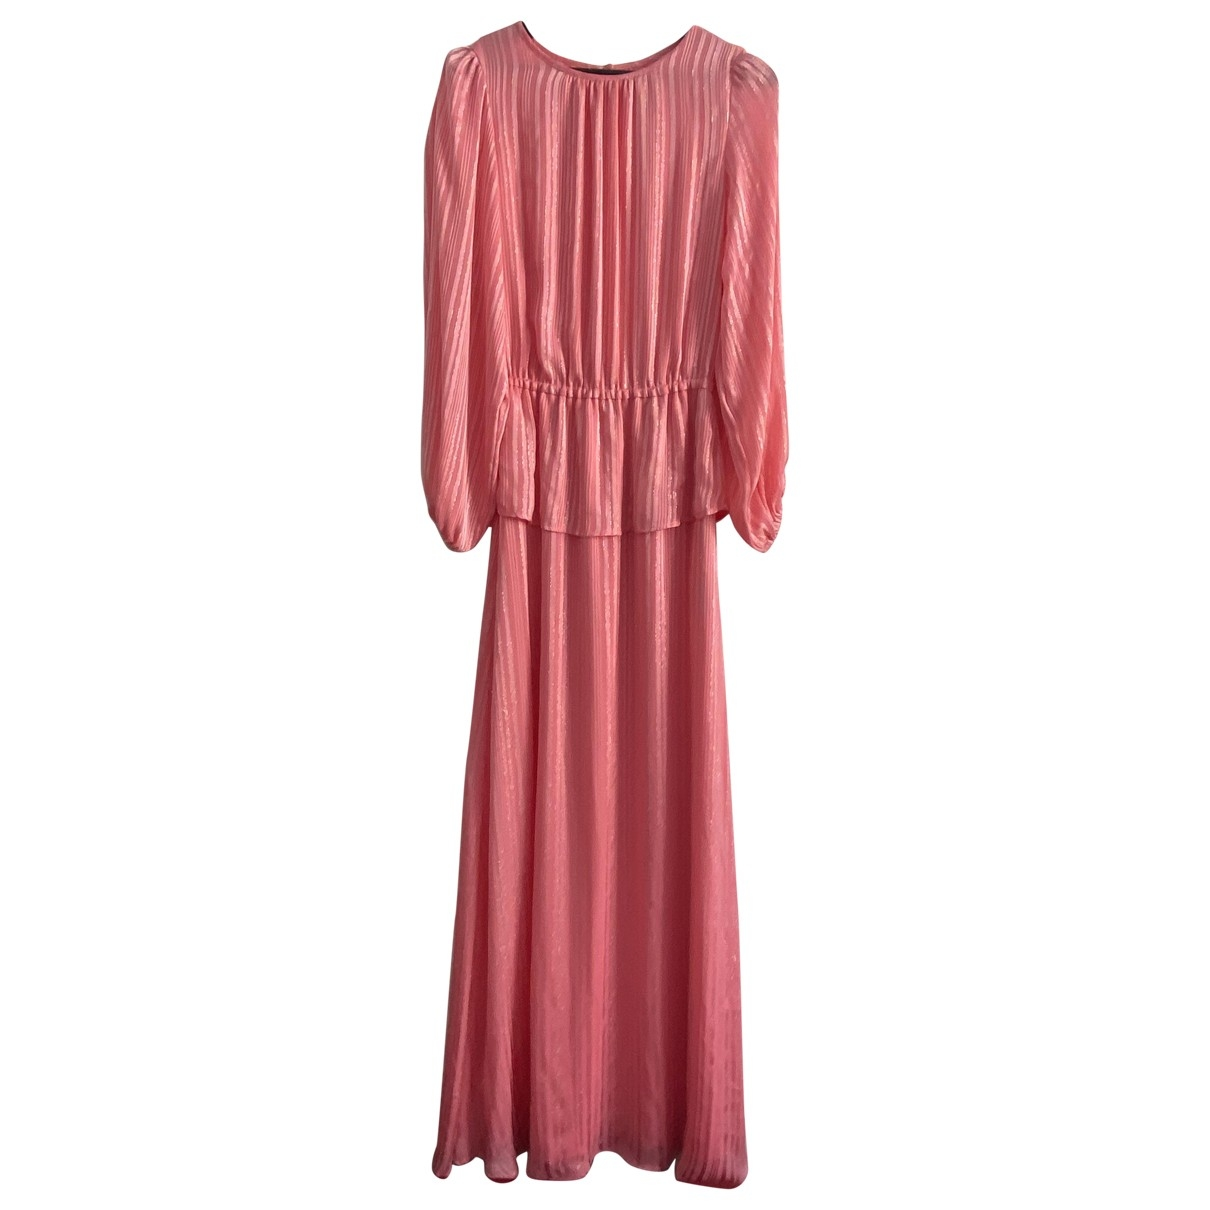 Ichi \N Pink dress for Women XS International